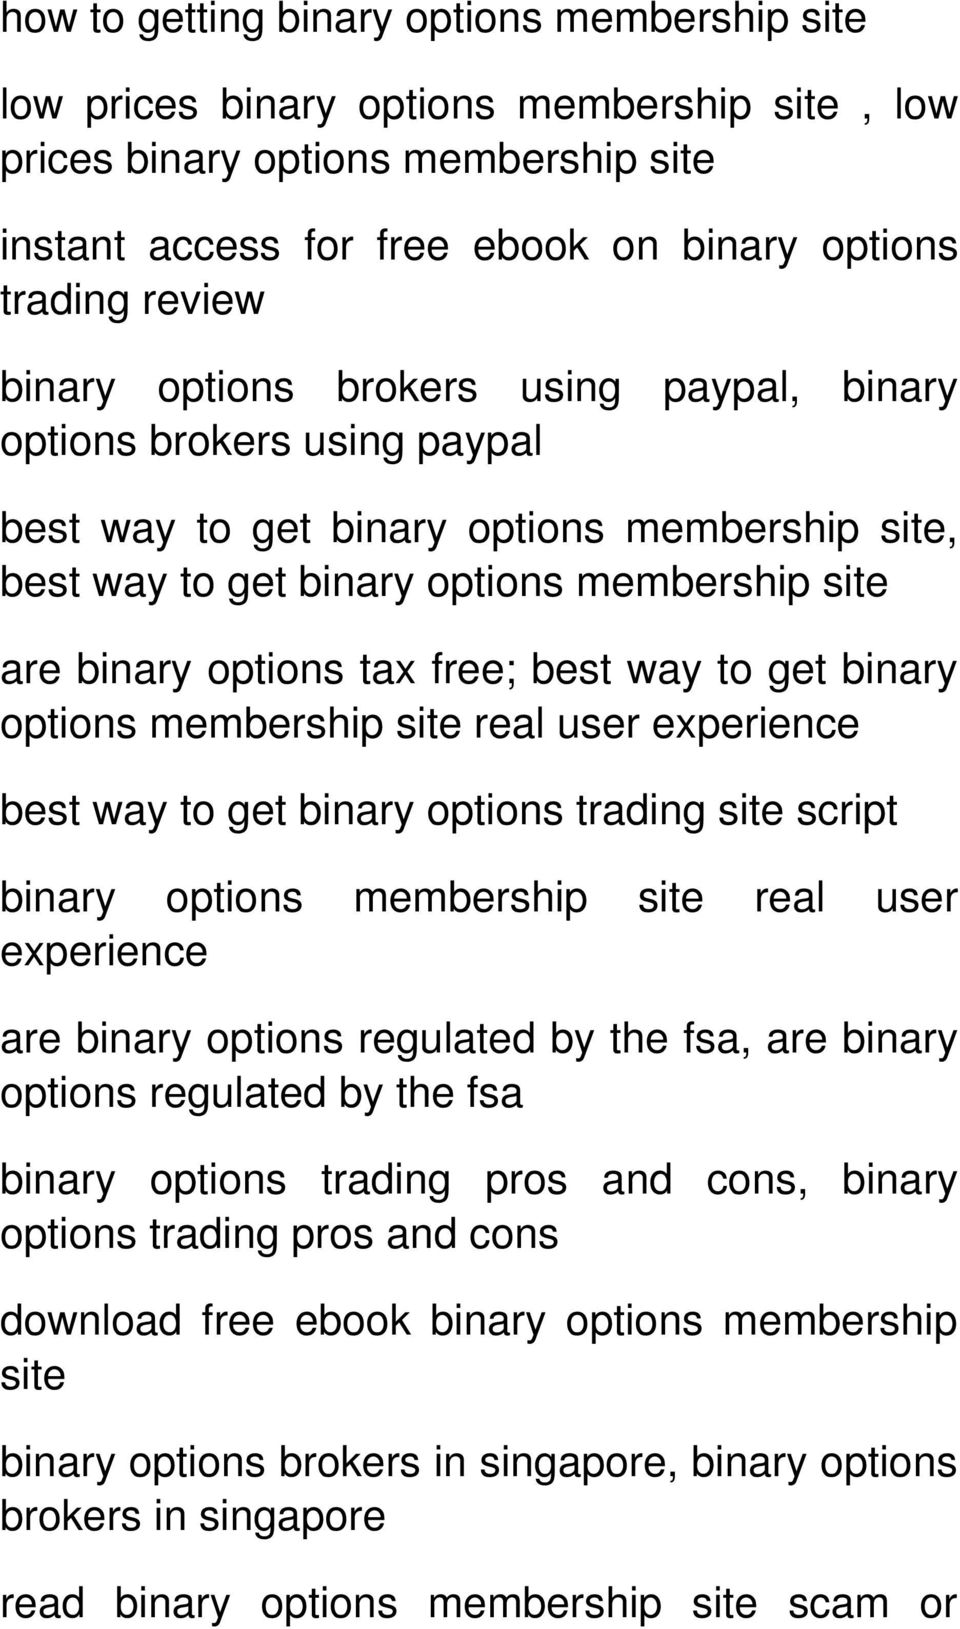 best way to get binary options membership site real user experience best way to get binary options trading site script binary options membership site real user experience are binary options regulated